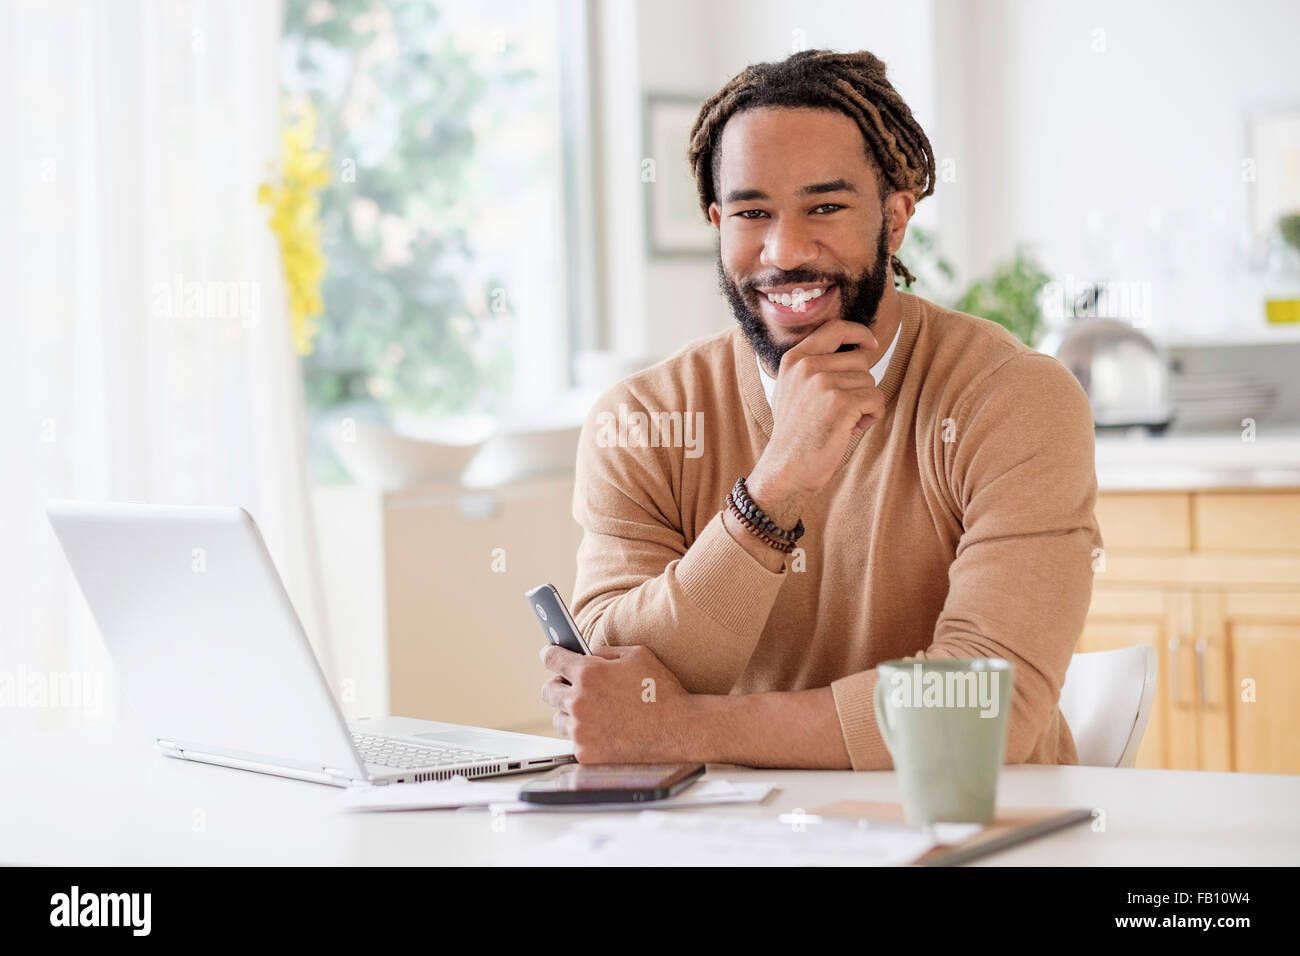 Portrait of smiley young man with laptop at table - Stock Image